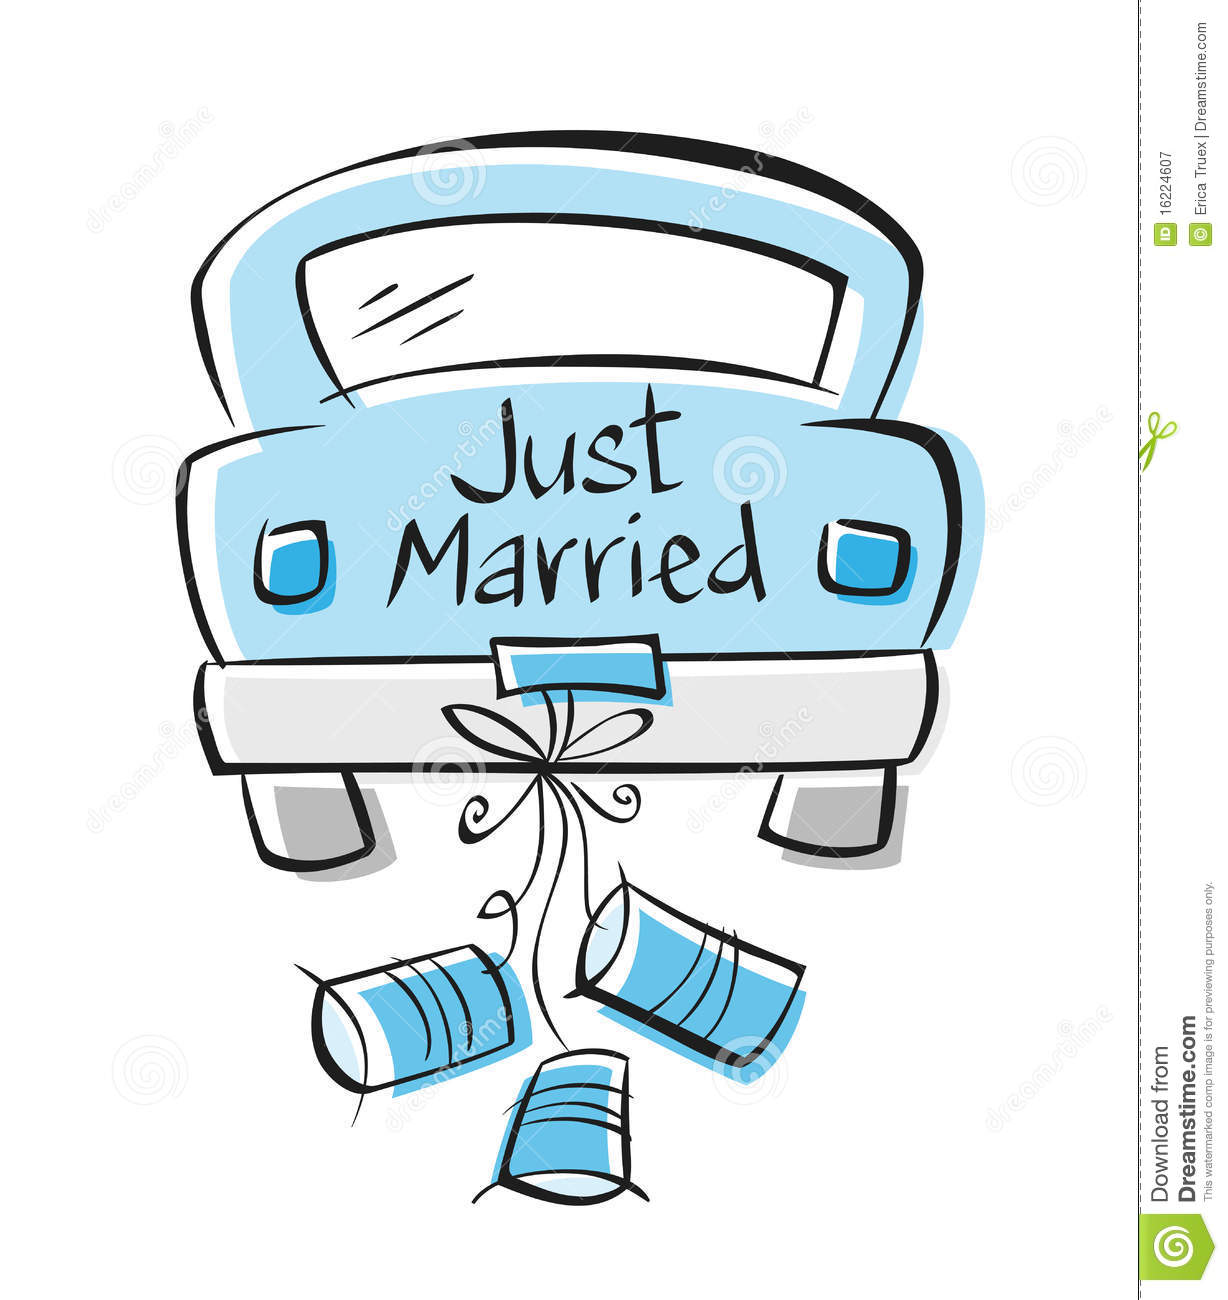 Just Married Royalty Free Stock Photography - Image: 16224607